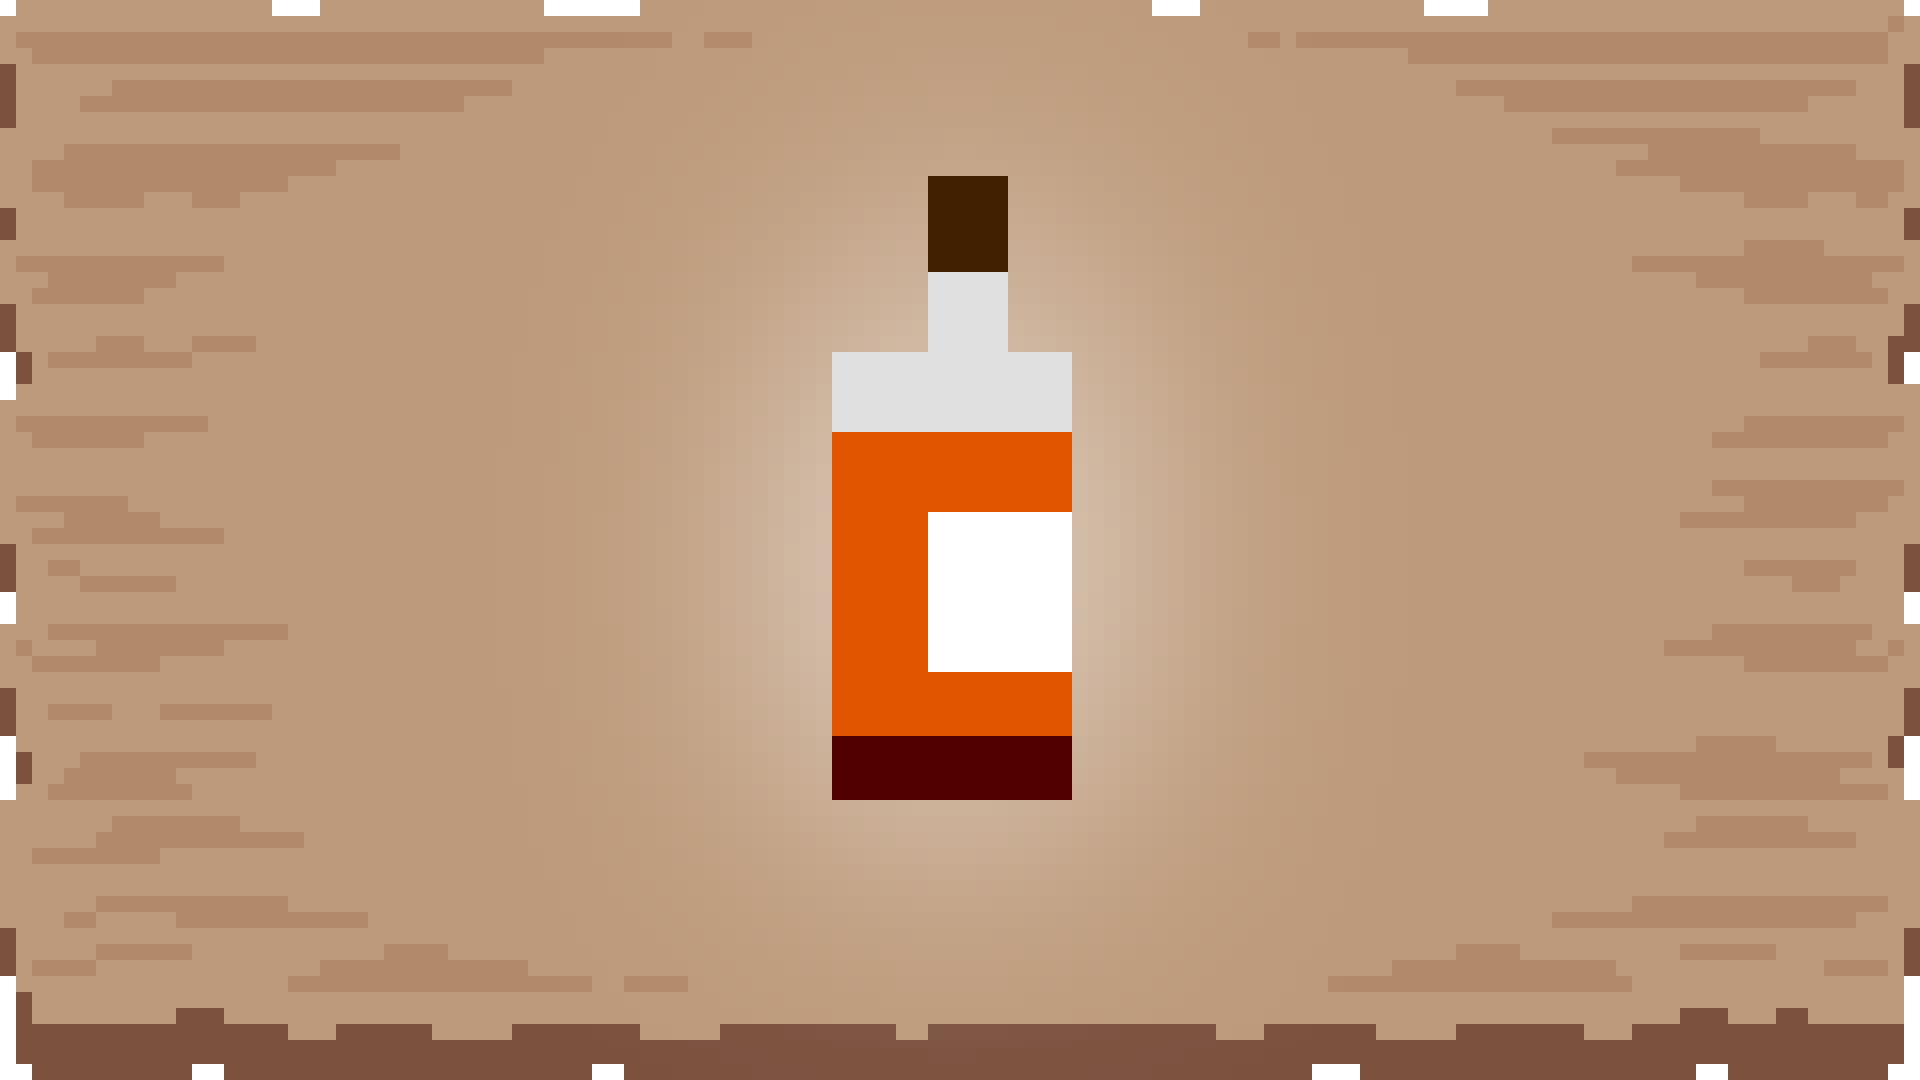 Hold on there, Empty Bottle